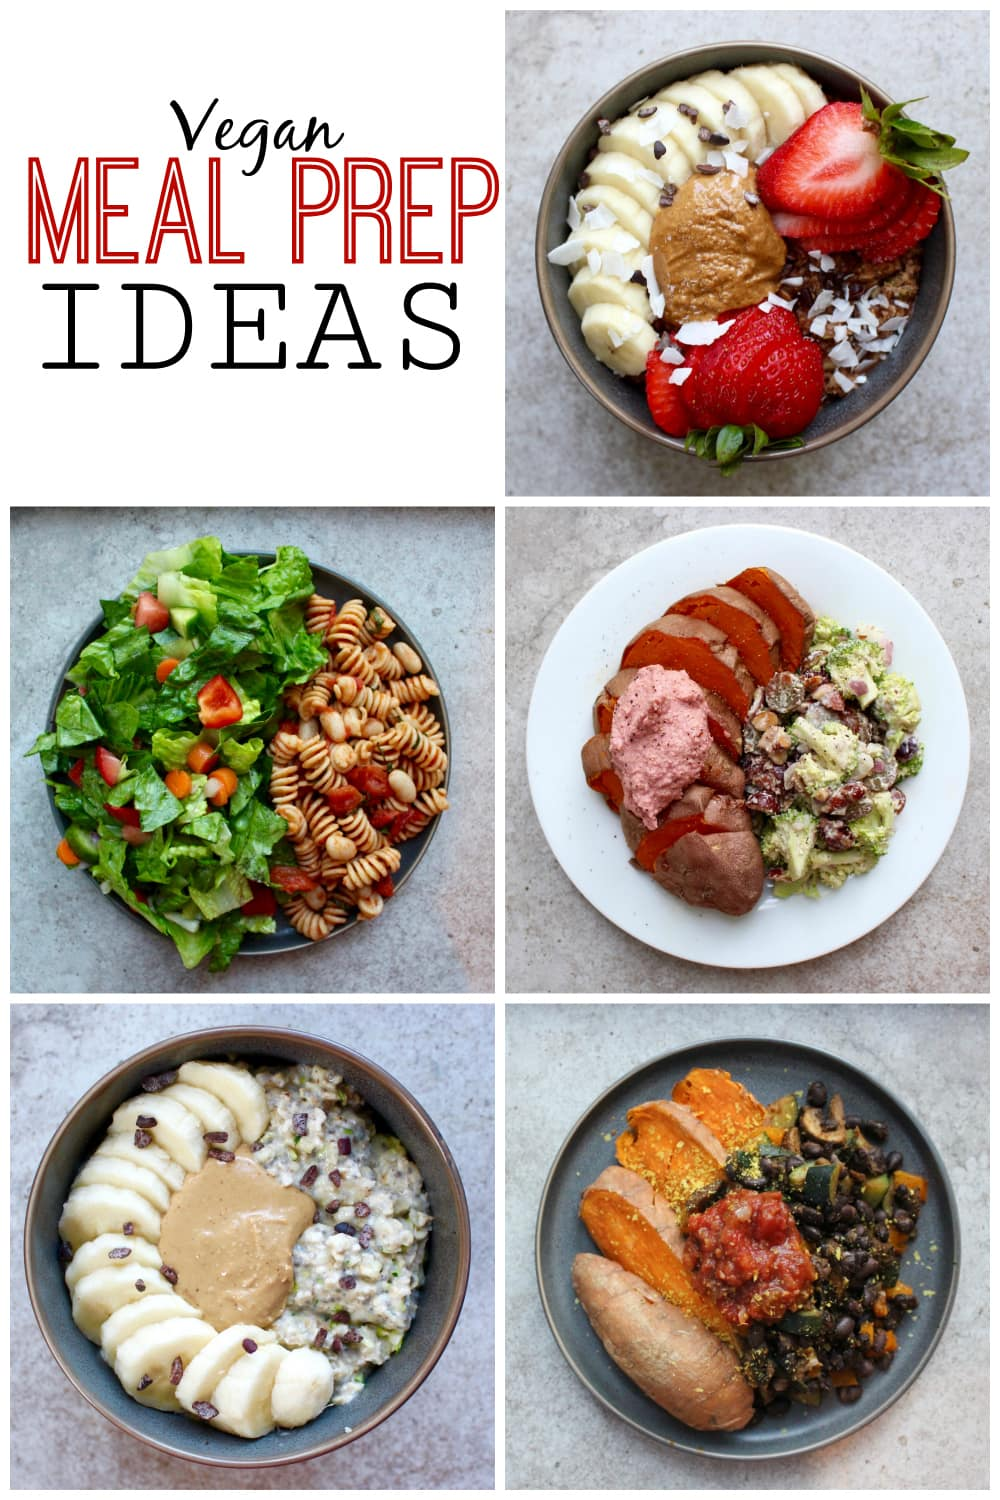 Bedwelming What I Ate This Week: Vegan Meal Prep Ideas | The Conscientious Eater @IQ16